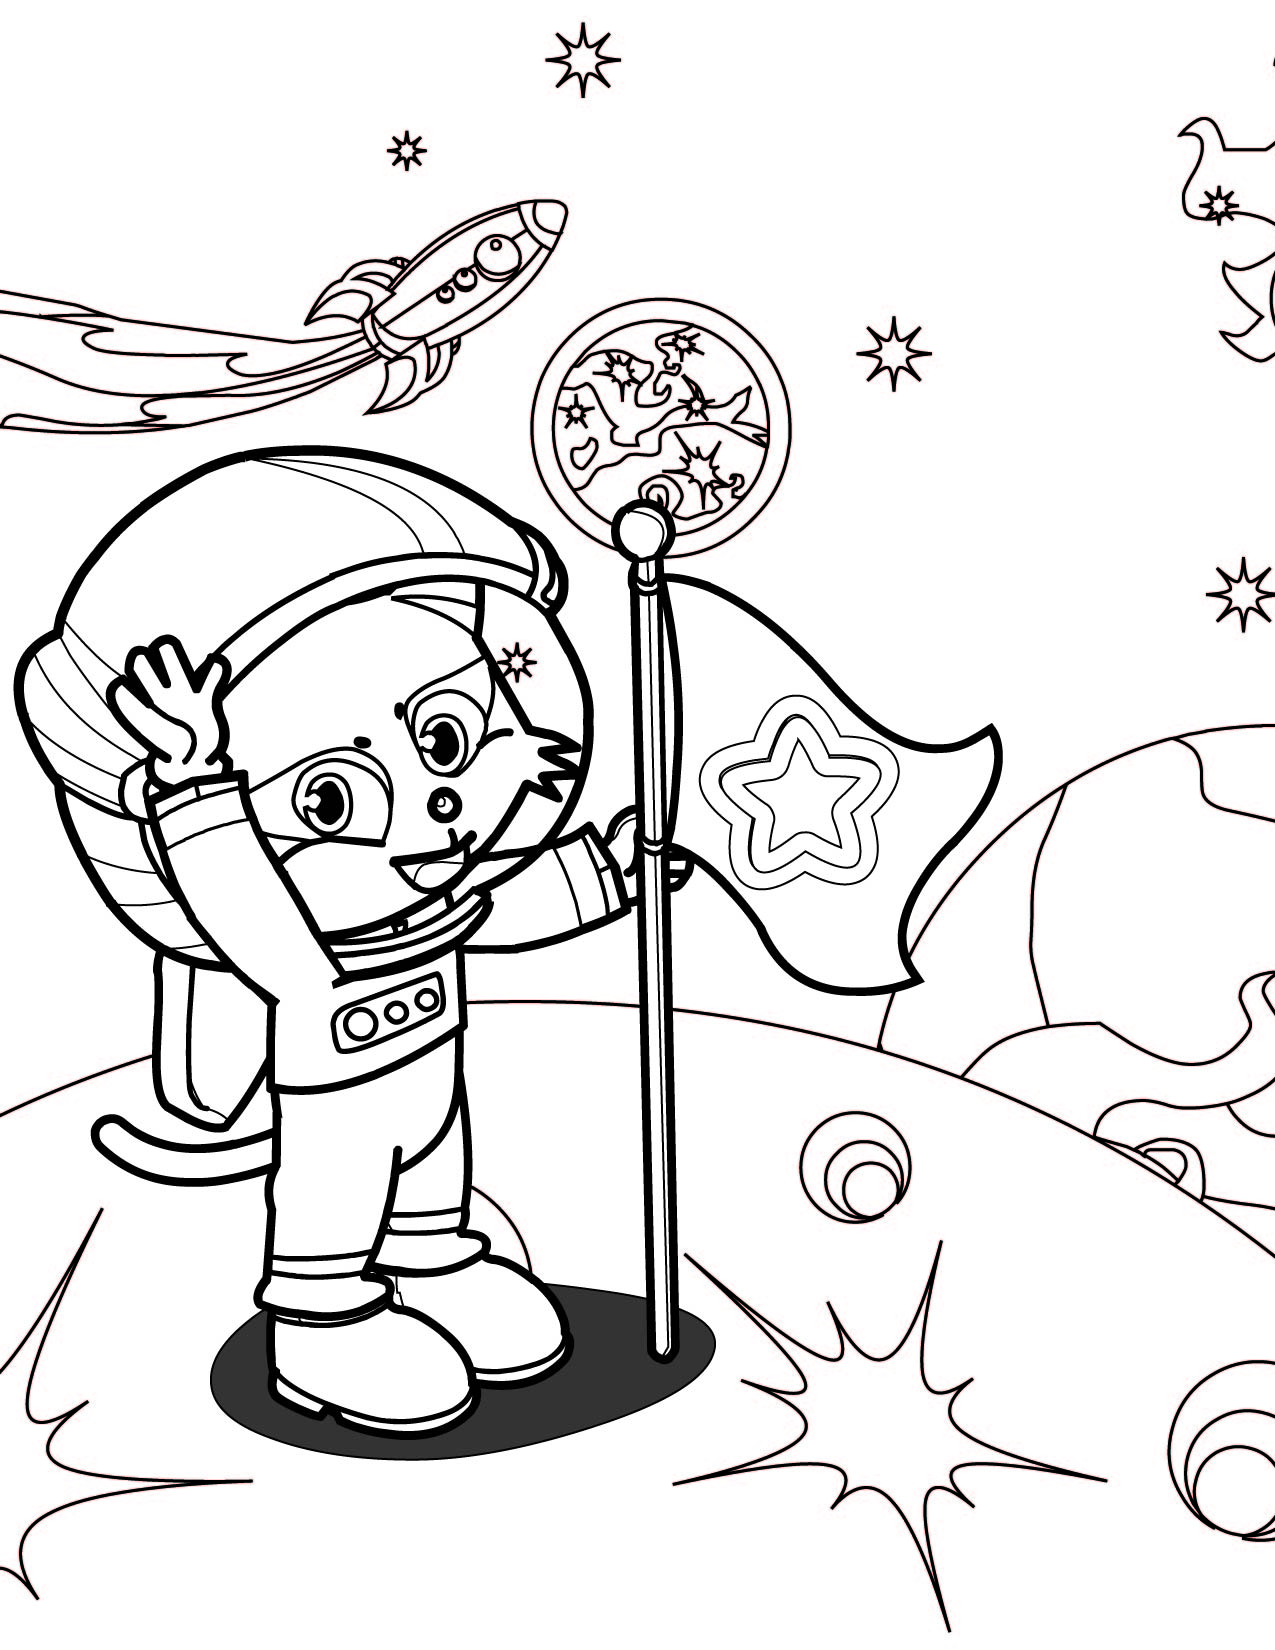 1275x1650 Astronaut Coloring Page Handipoints Astronaut Coloring Pages Print